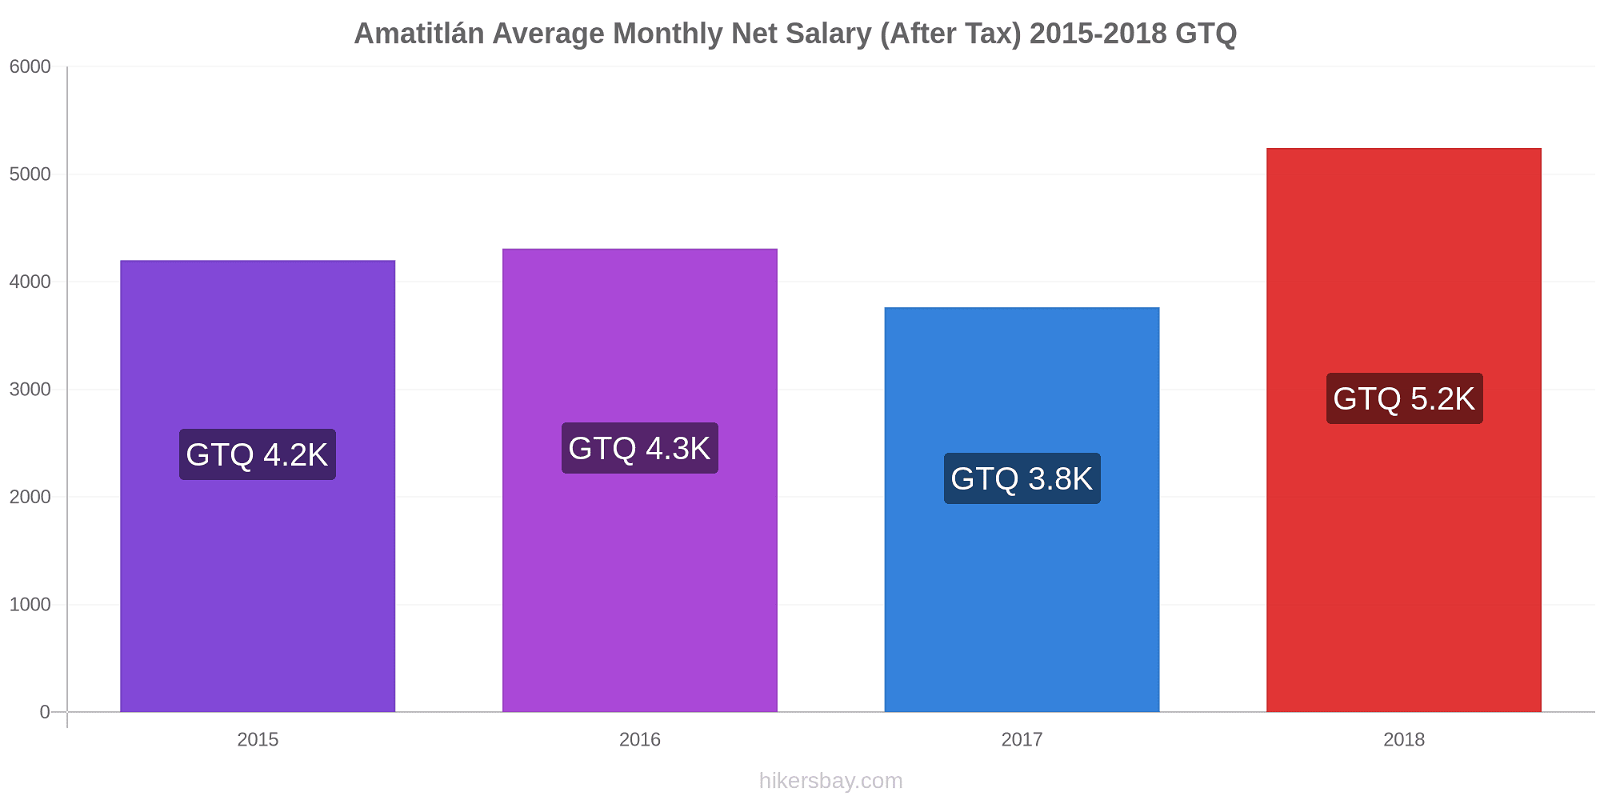 Amatitlán price changes Average Monthly Net Salary (After Tax) hikersbay.com